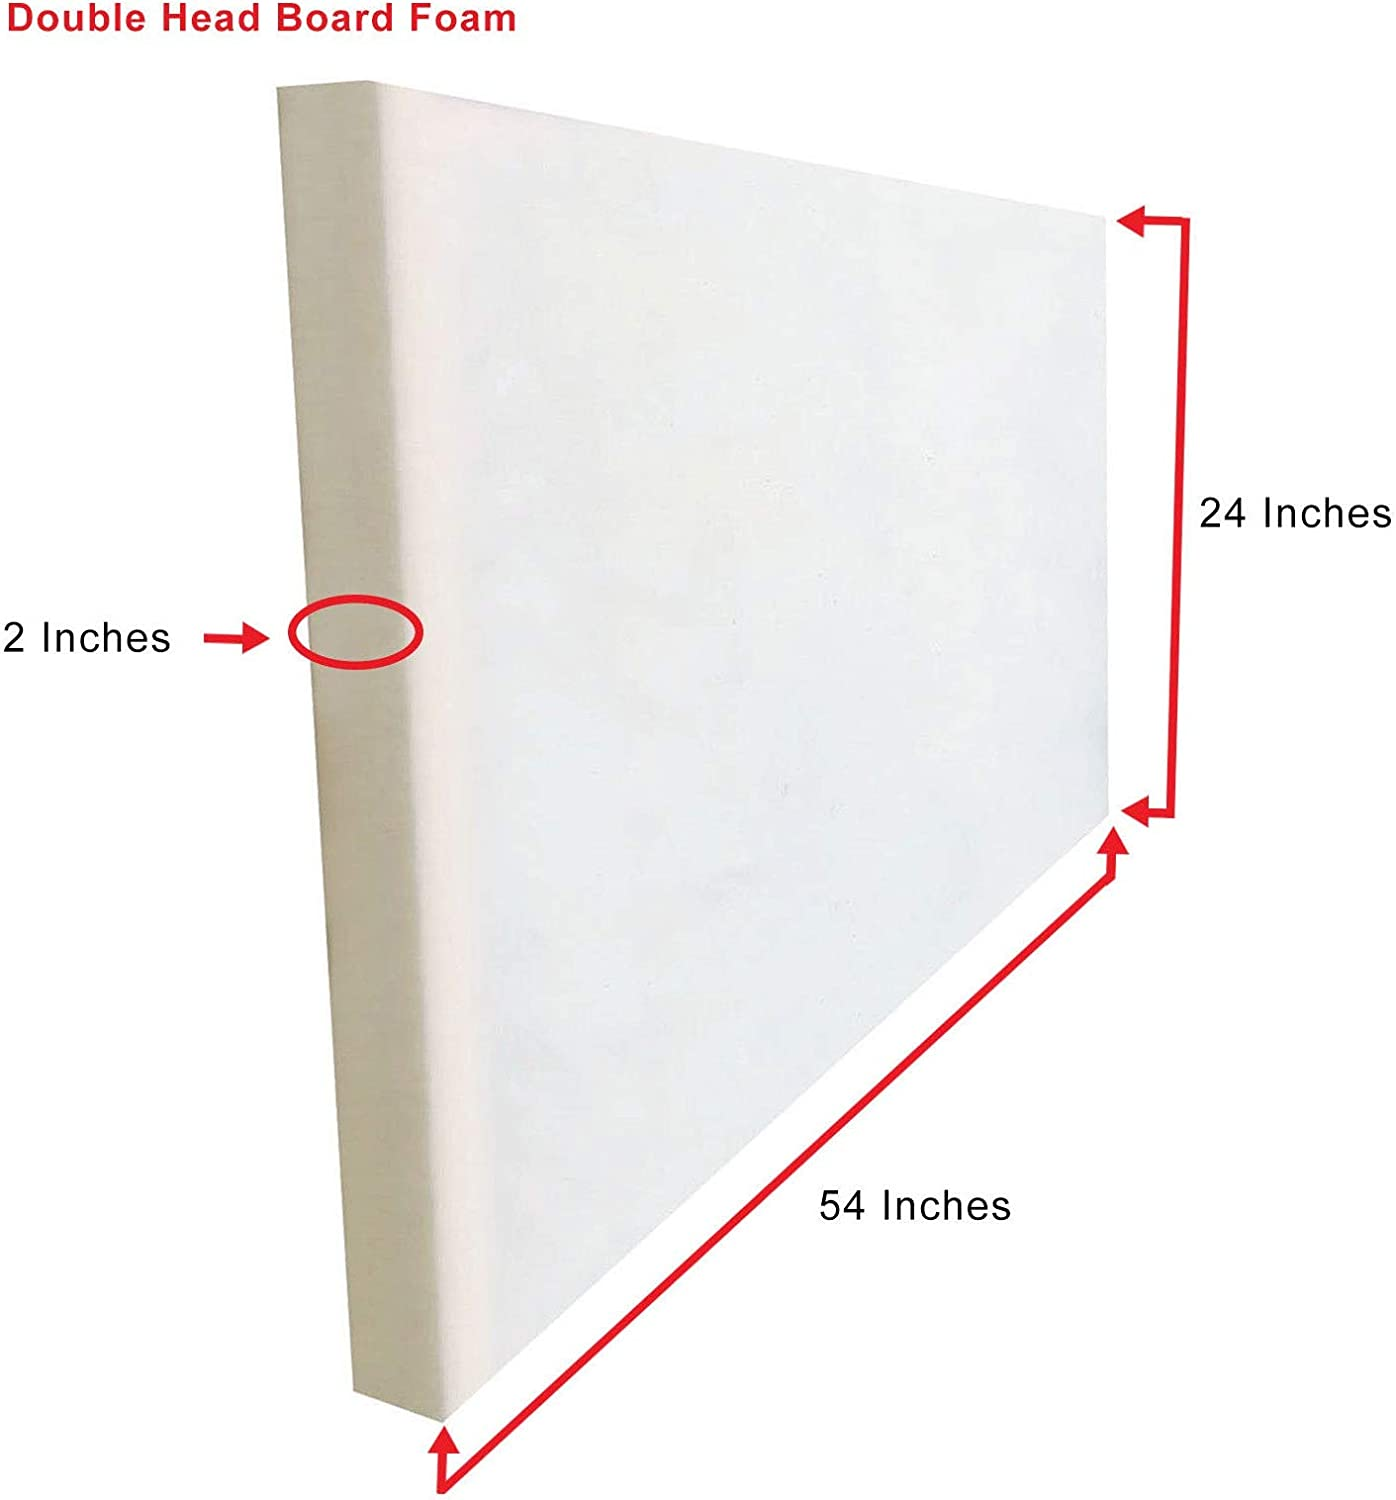 Double 24 x 54 x 2 New Upholstery Headboard Foam Sheets Any and Every Size Available